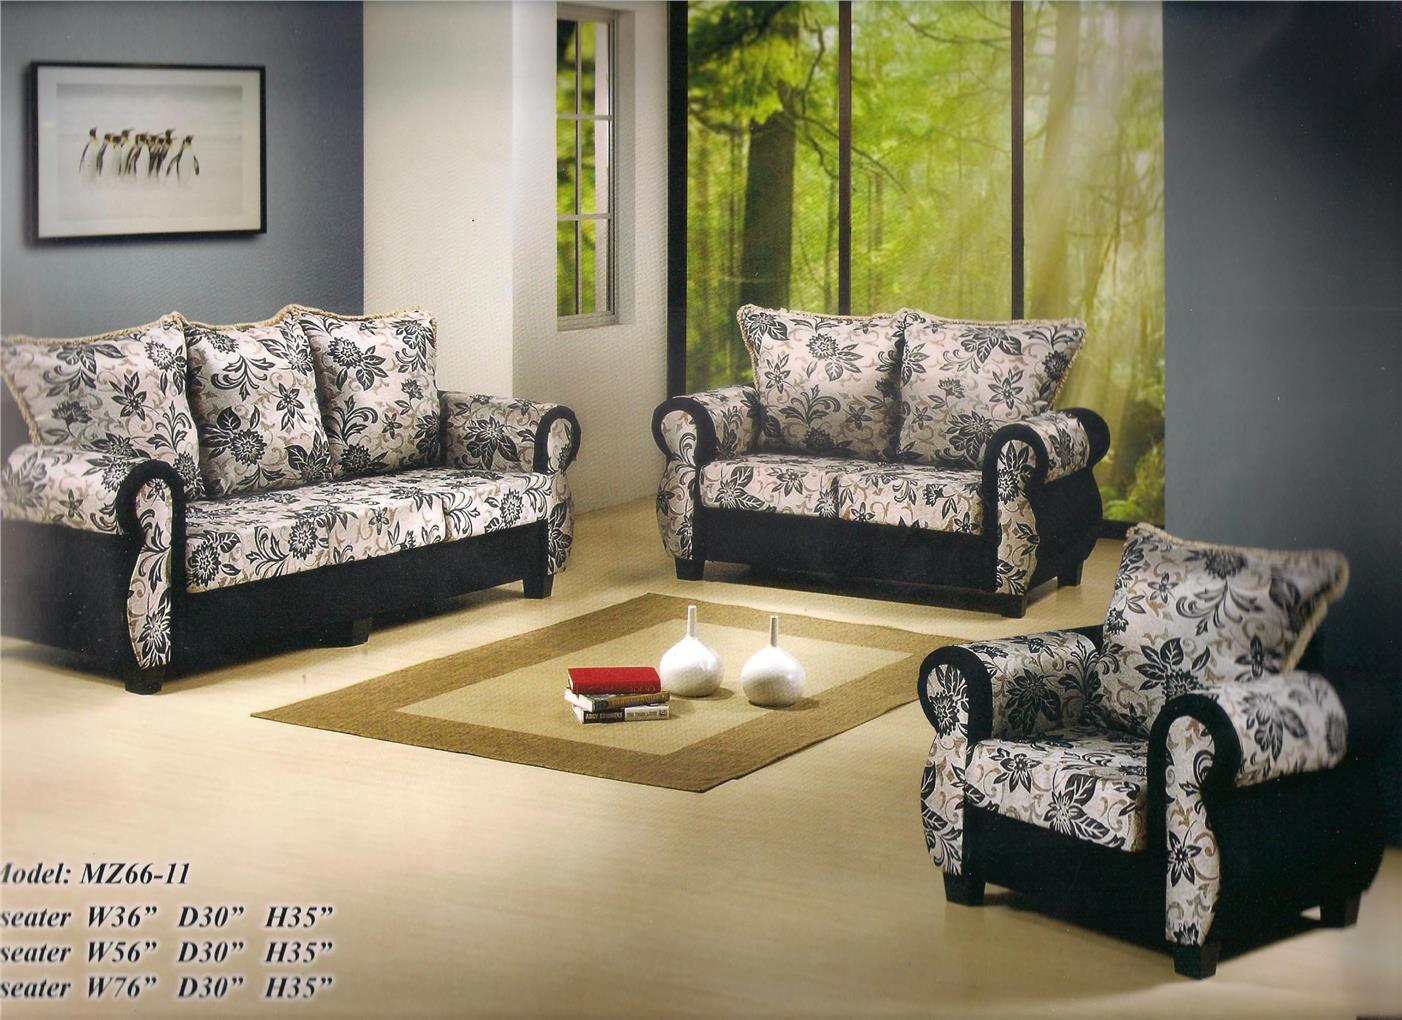 Sofa 3 2 1 Nicehome Low Price 3 432 431 Seater Sof End 10 20 2017 3 15 Pm